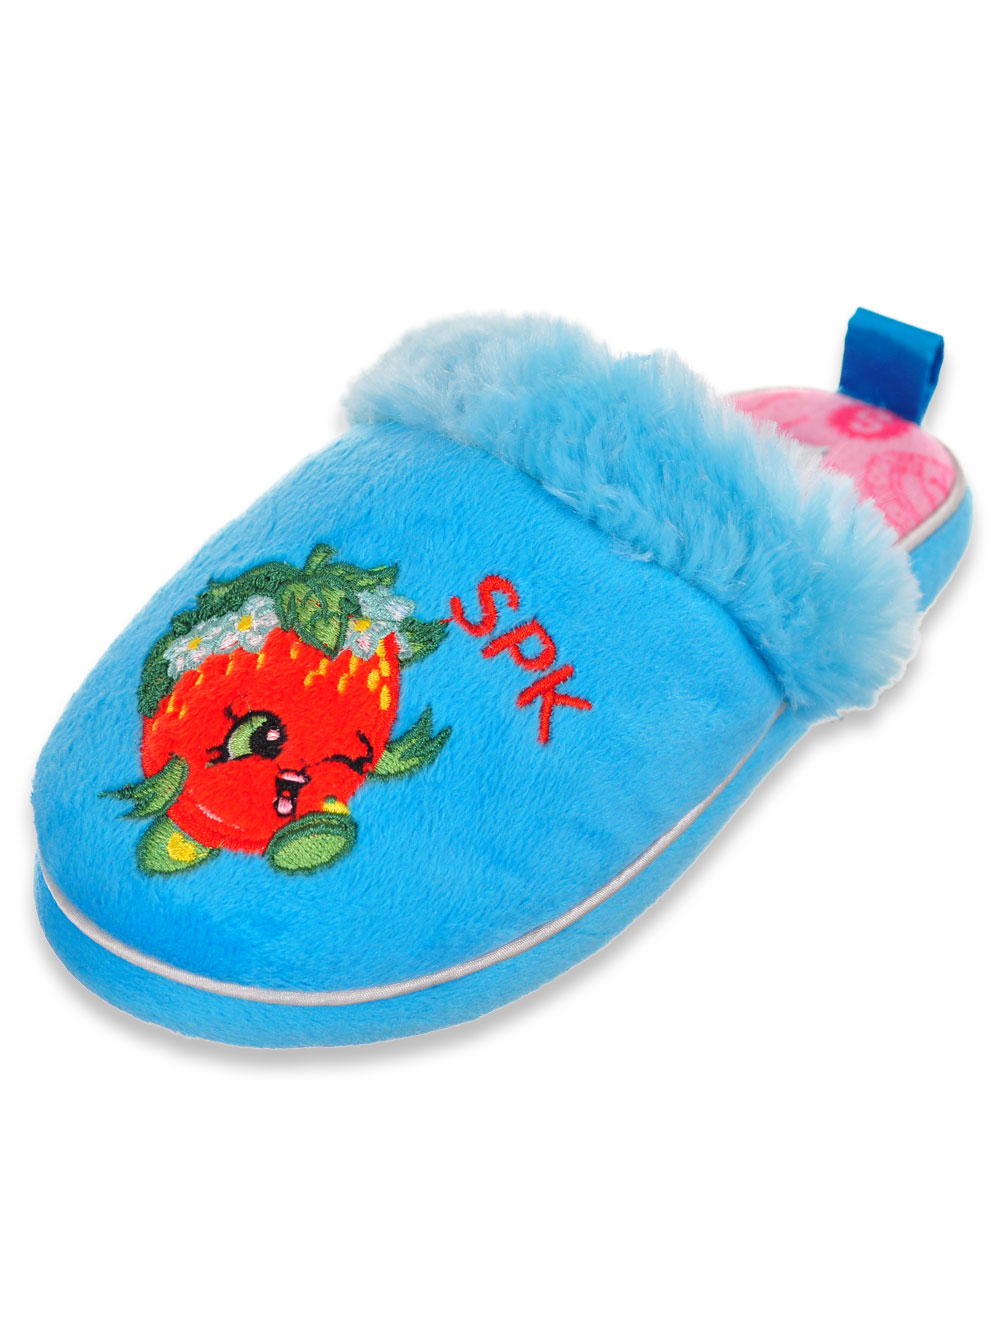 f3ef0a42803 Girls  Slippers by Shopkins in fuchsia and turquoise from Cookie s Kids